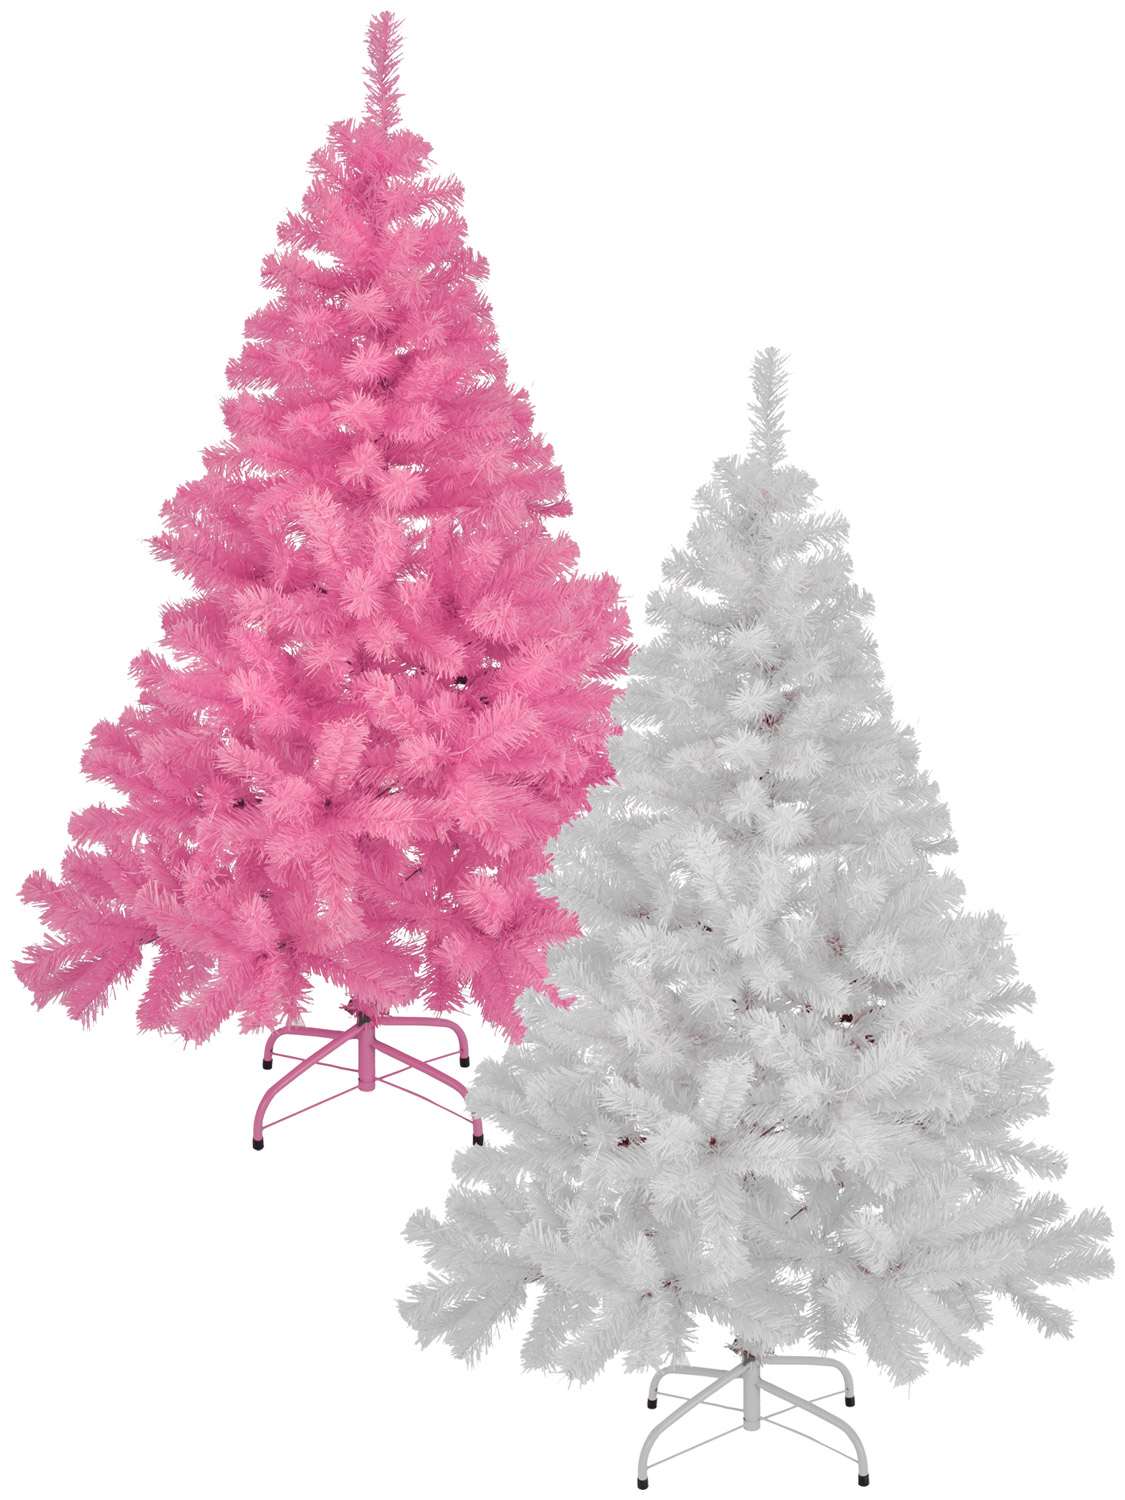 Pink Artificial Christmas Tree.Details About White Pink Artificial Christmas Tree Metal Stand 6ft 5ft 4ft Xmas Decoration